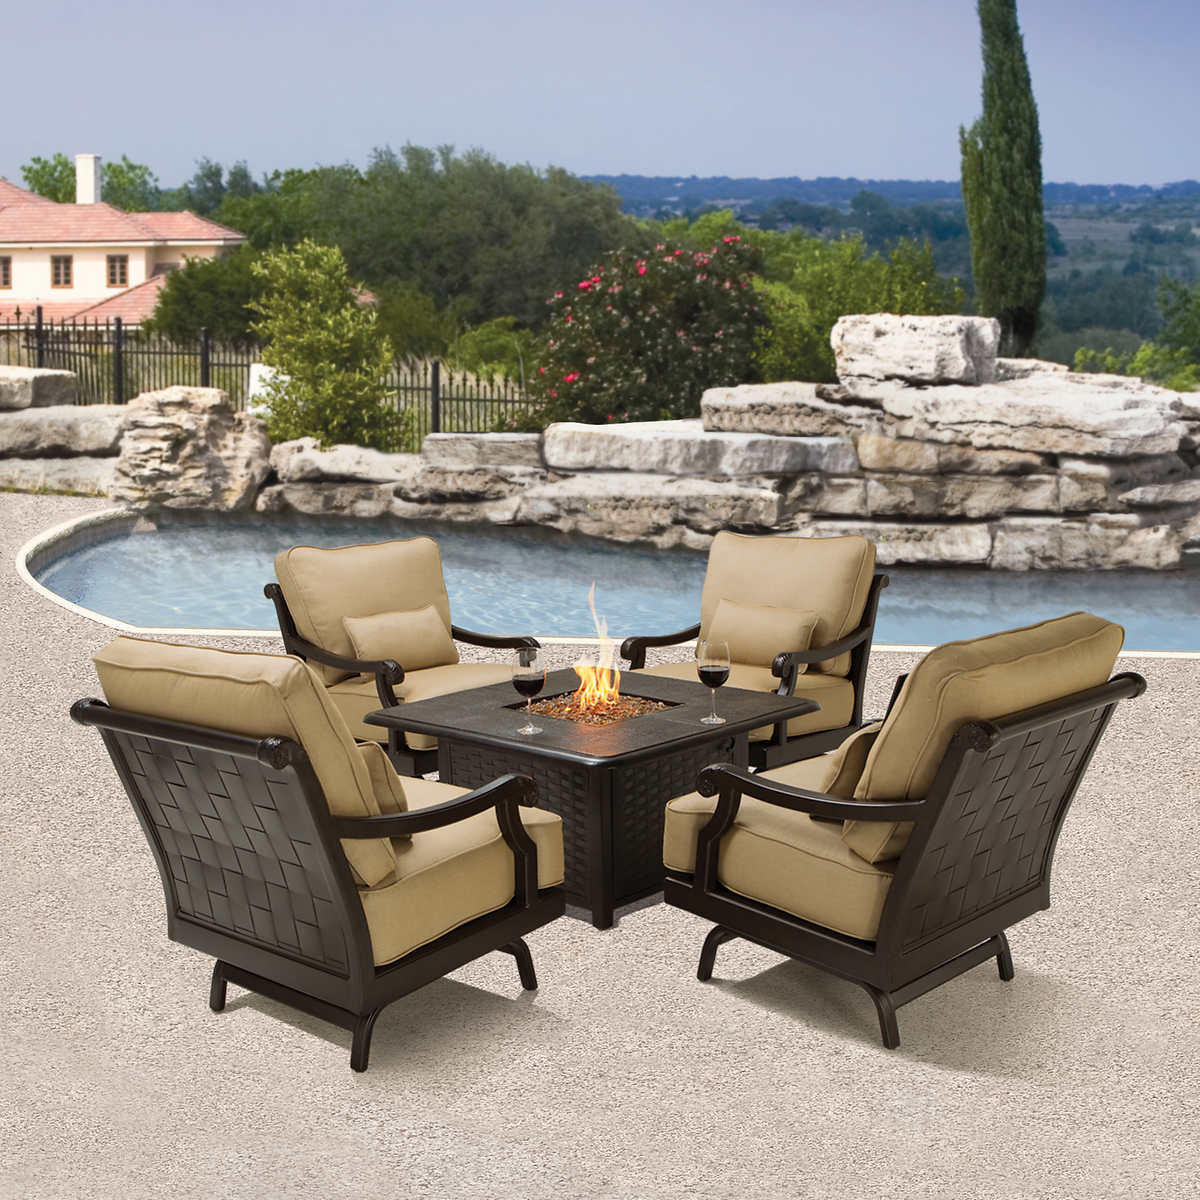 Villa 5-piece Fire Chat Set - Fire Pits & Chat Sets Costco